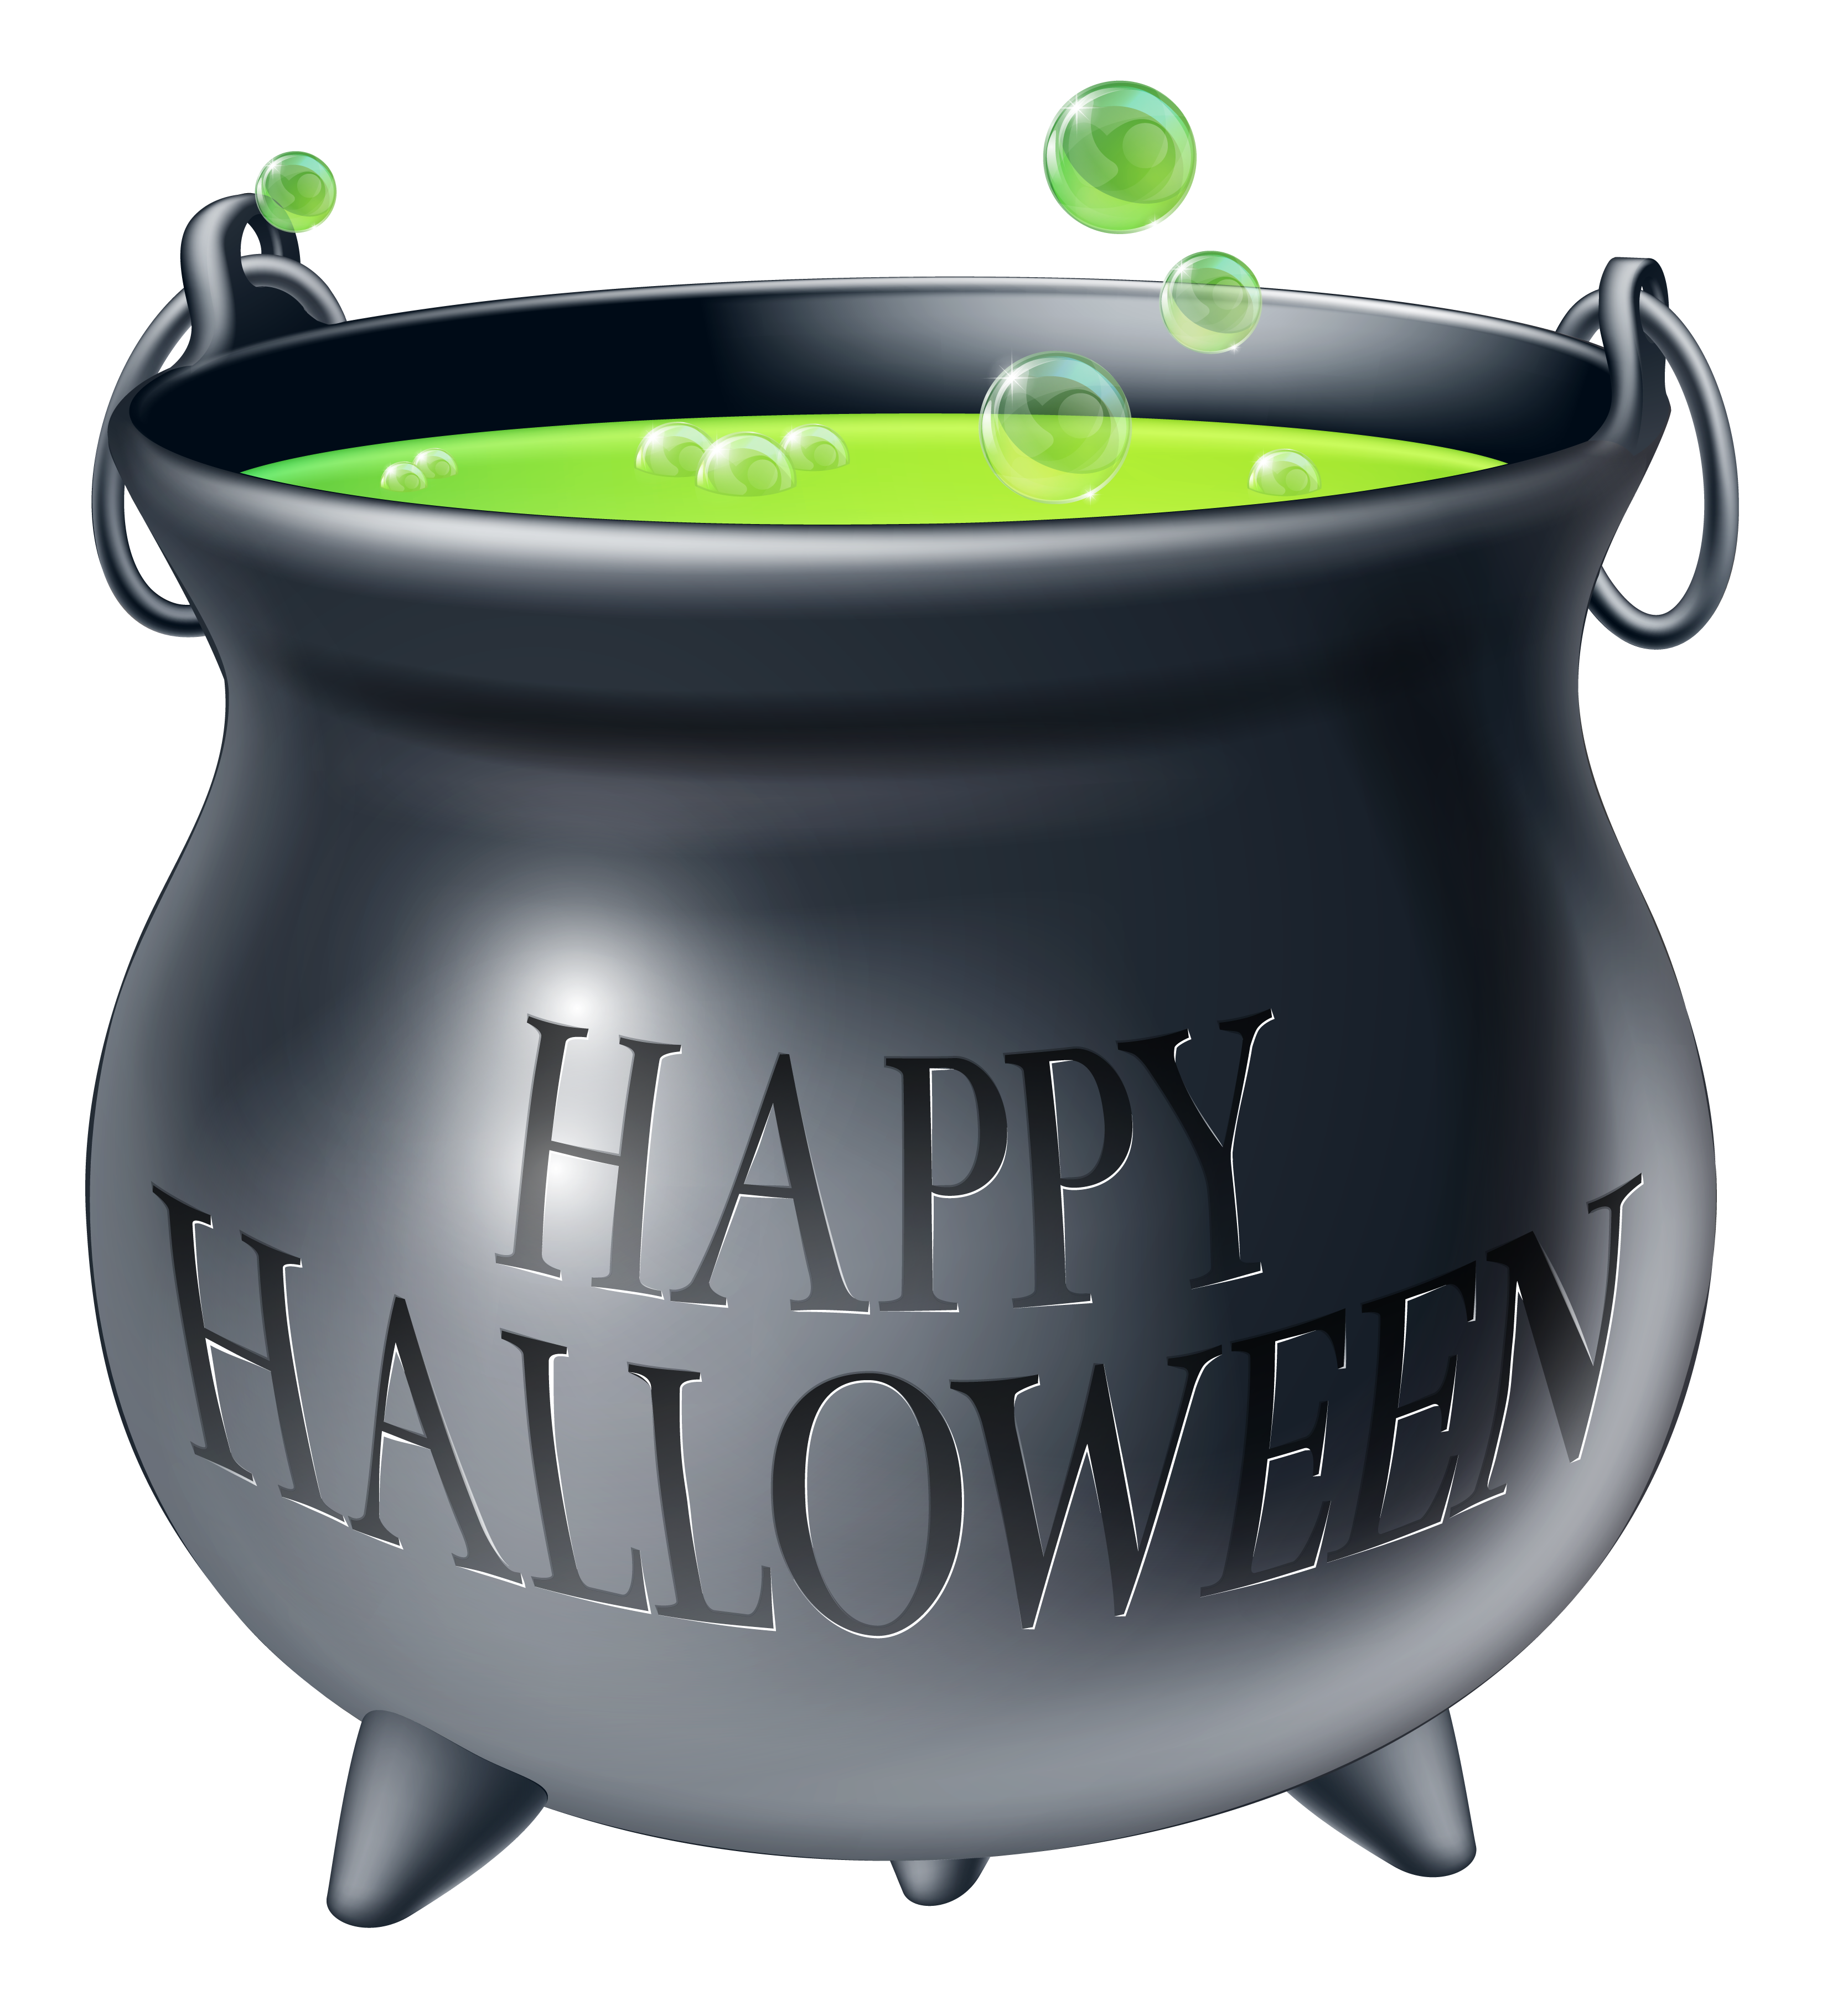 Happy halloween cauldron png. Witch clipart christmas